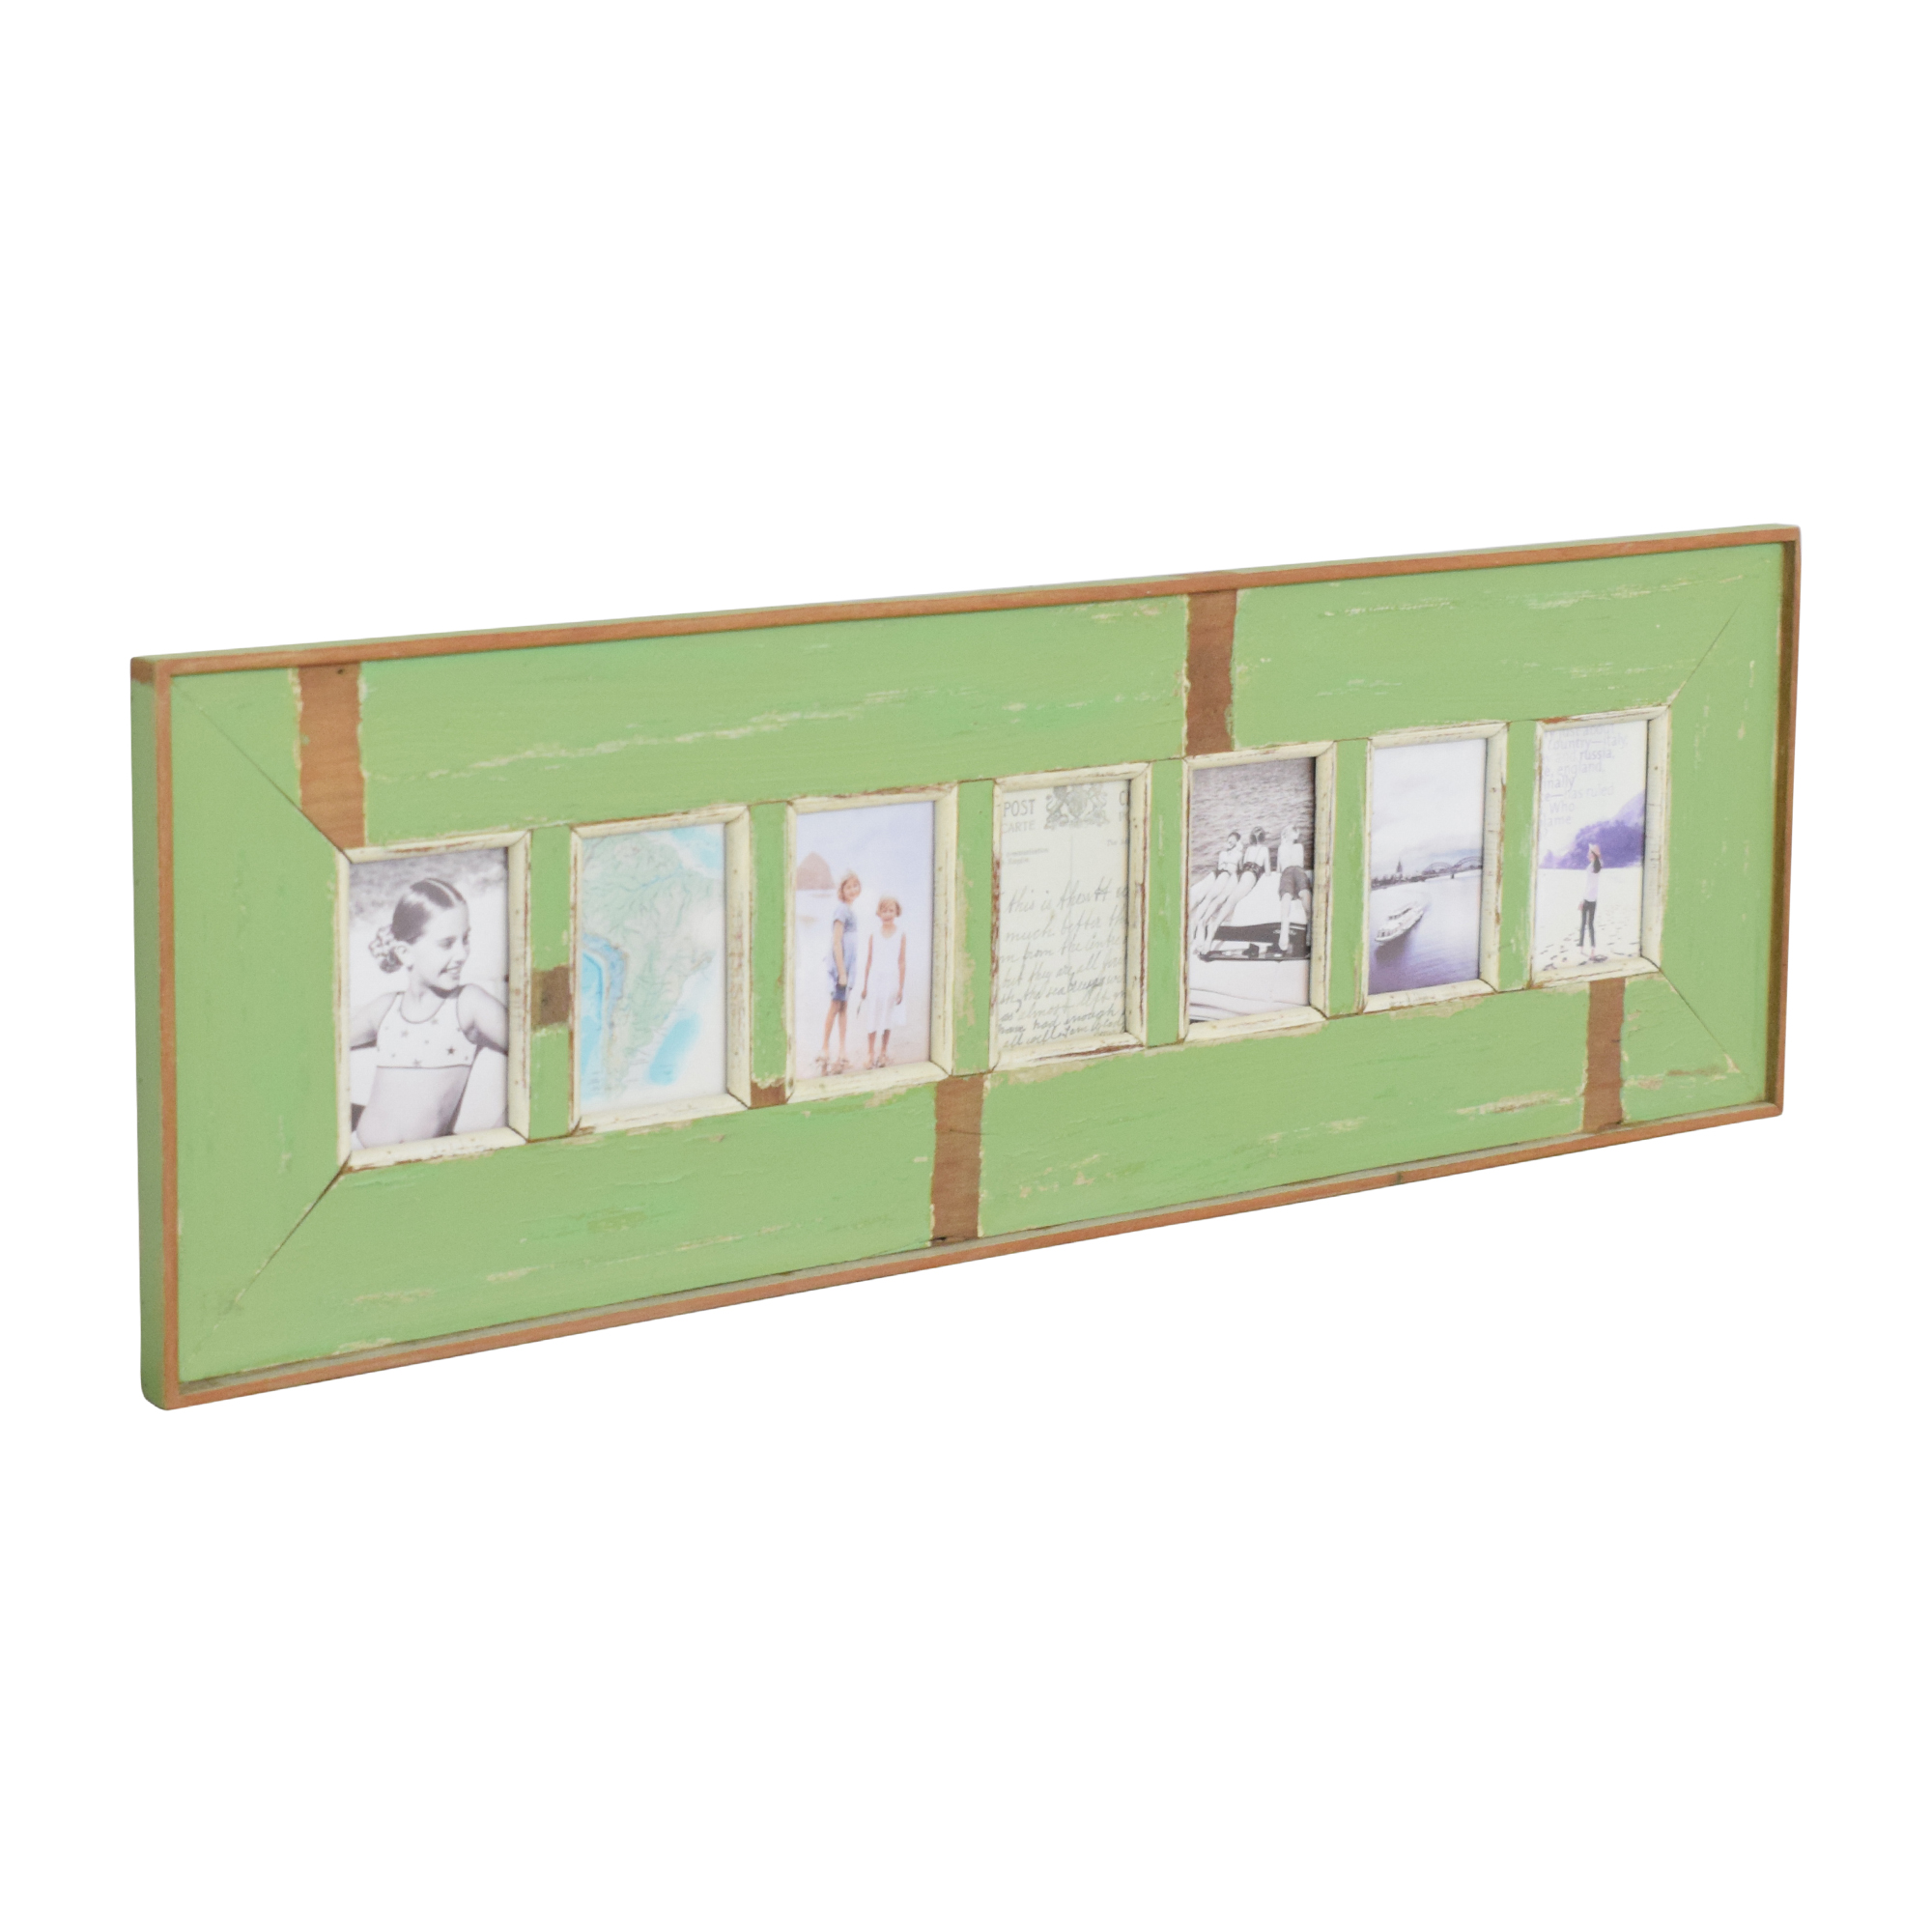 Shabby Chic Style Frame for sale